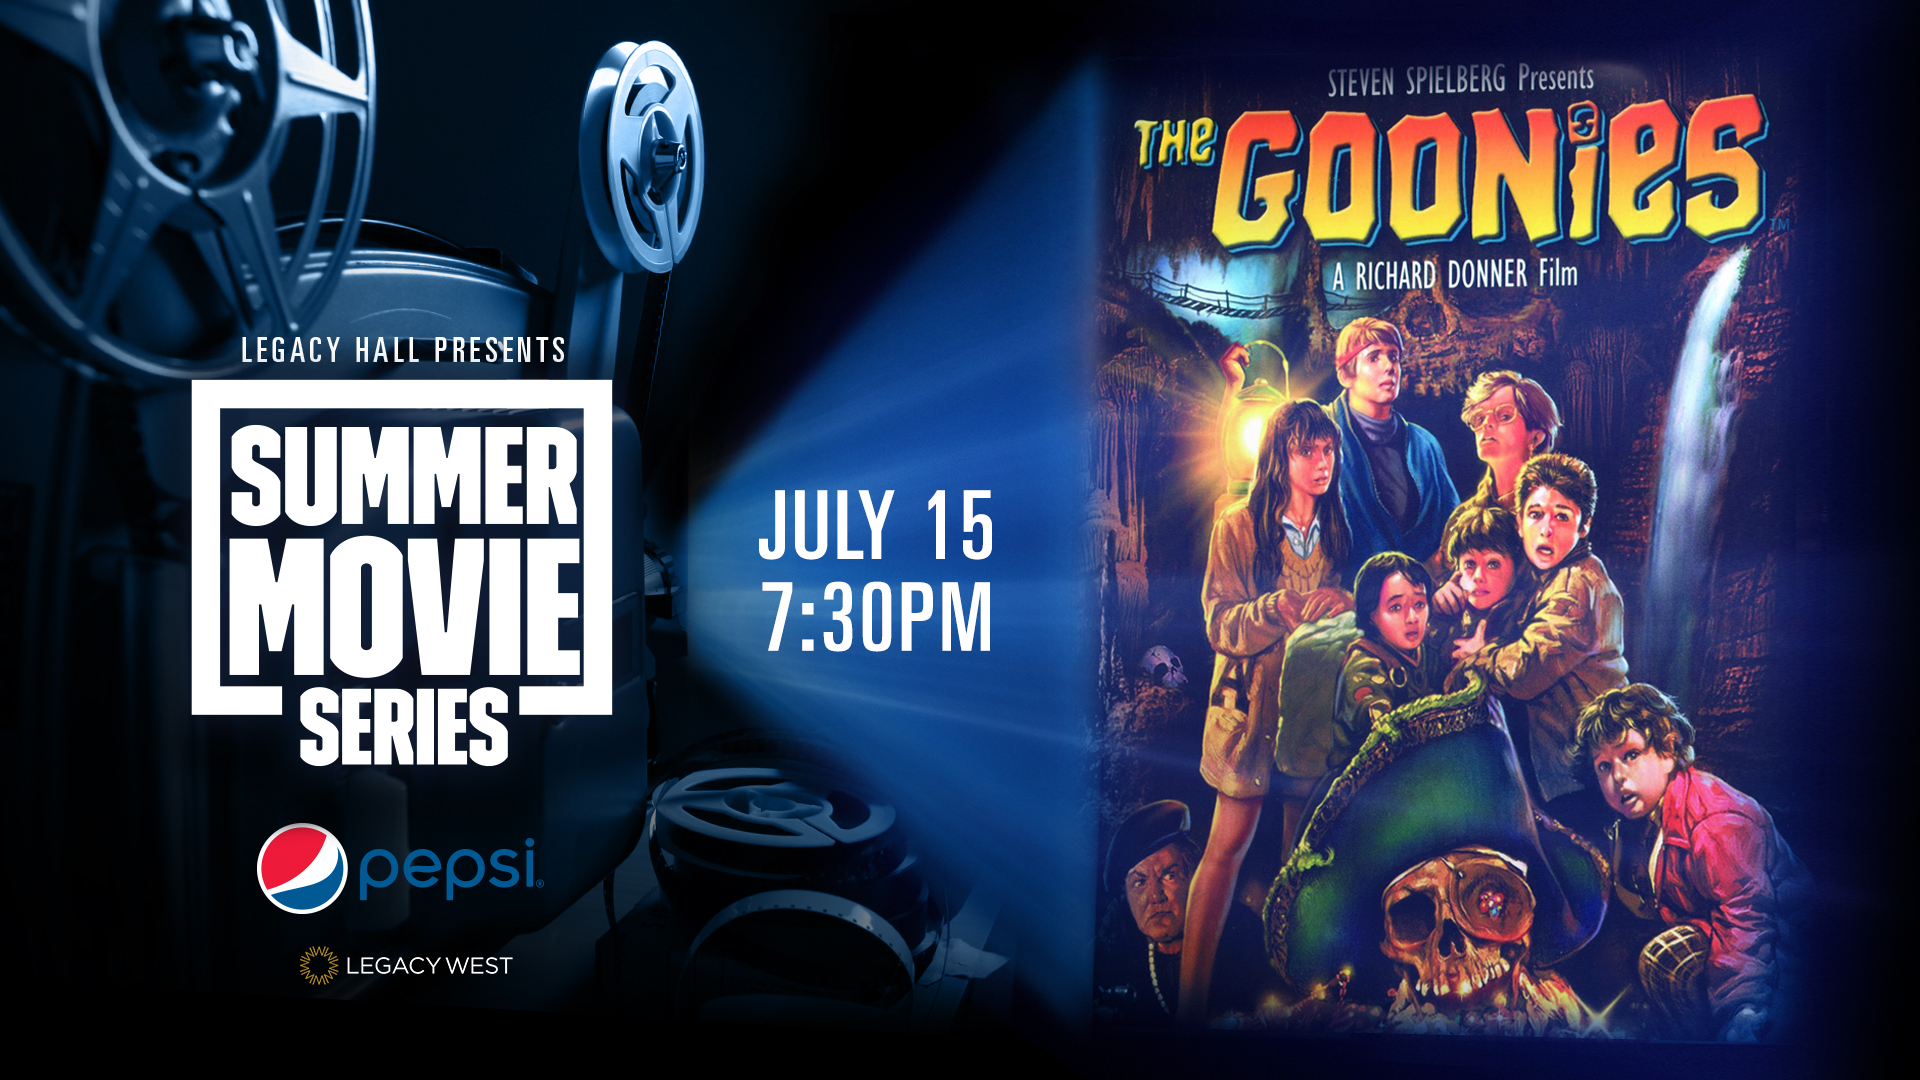 Promo image of Pepsi Summer Movie Series: The Goonies